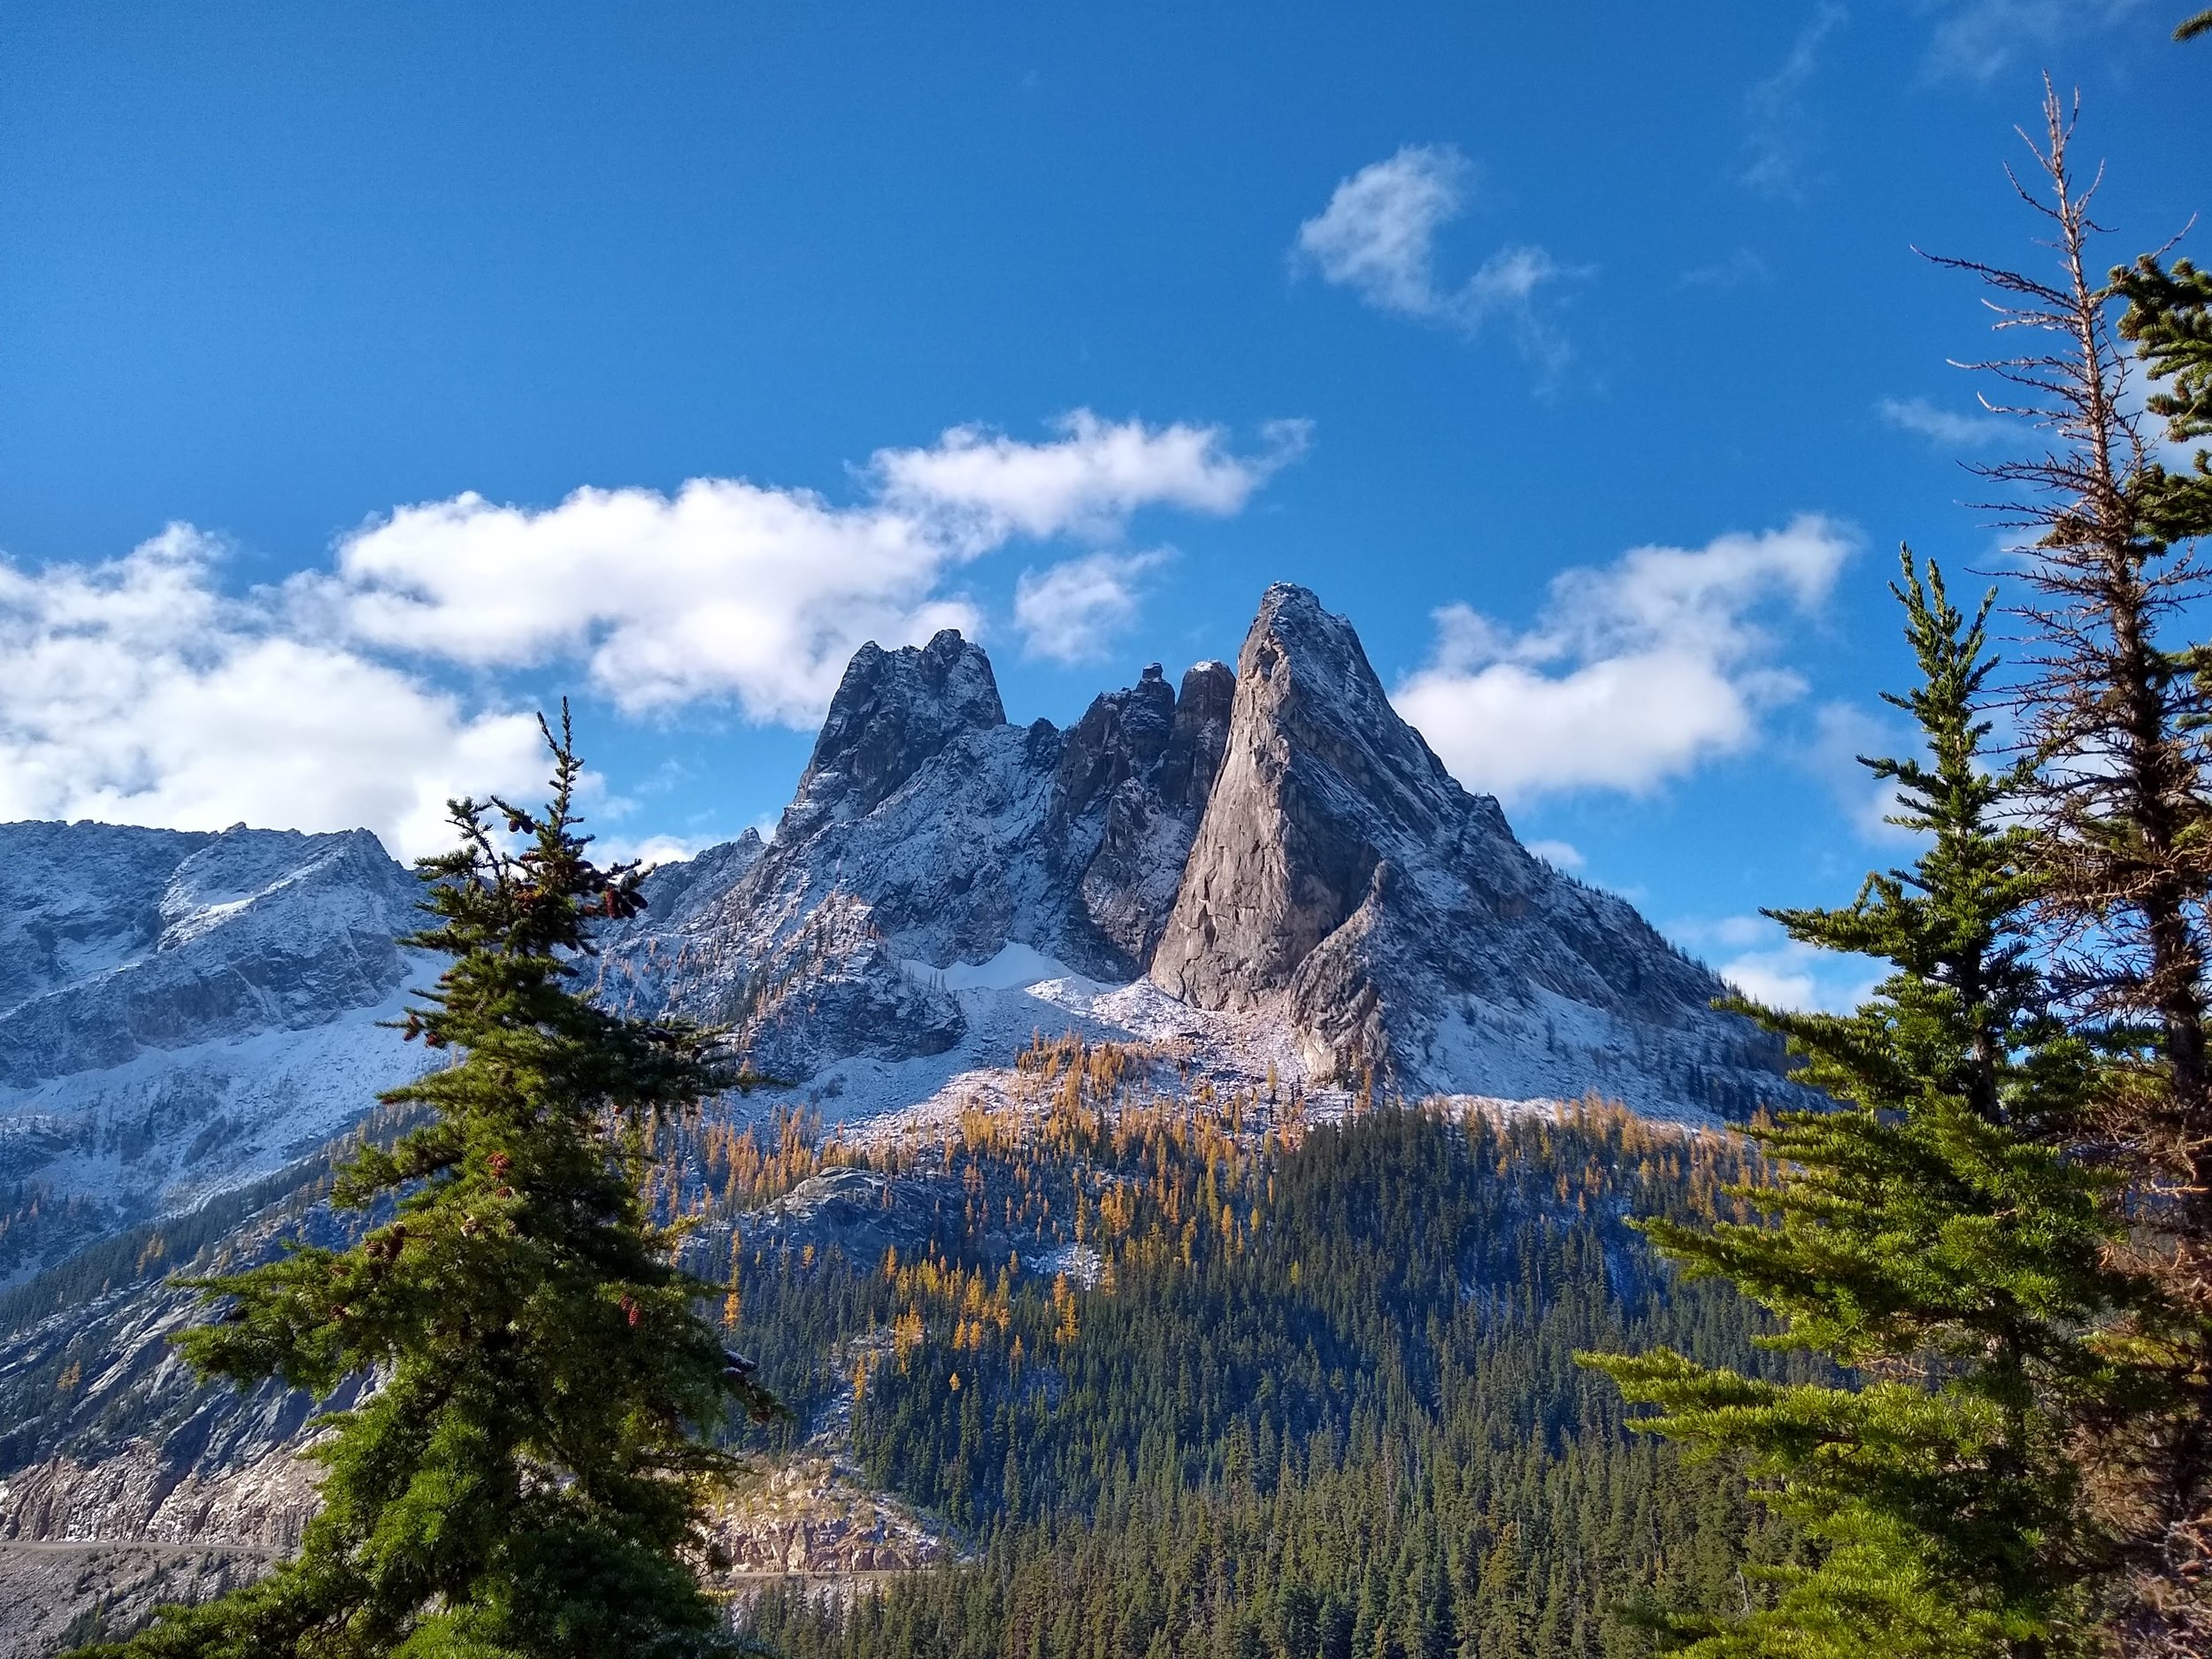 North Cascades National Park in northern Washington